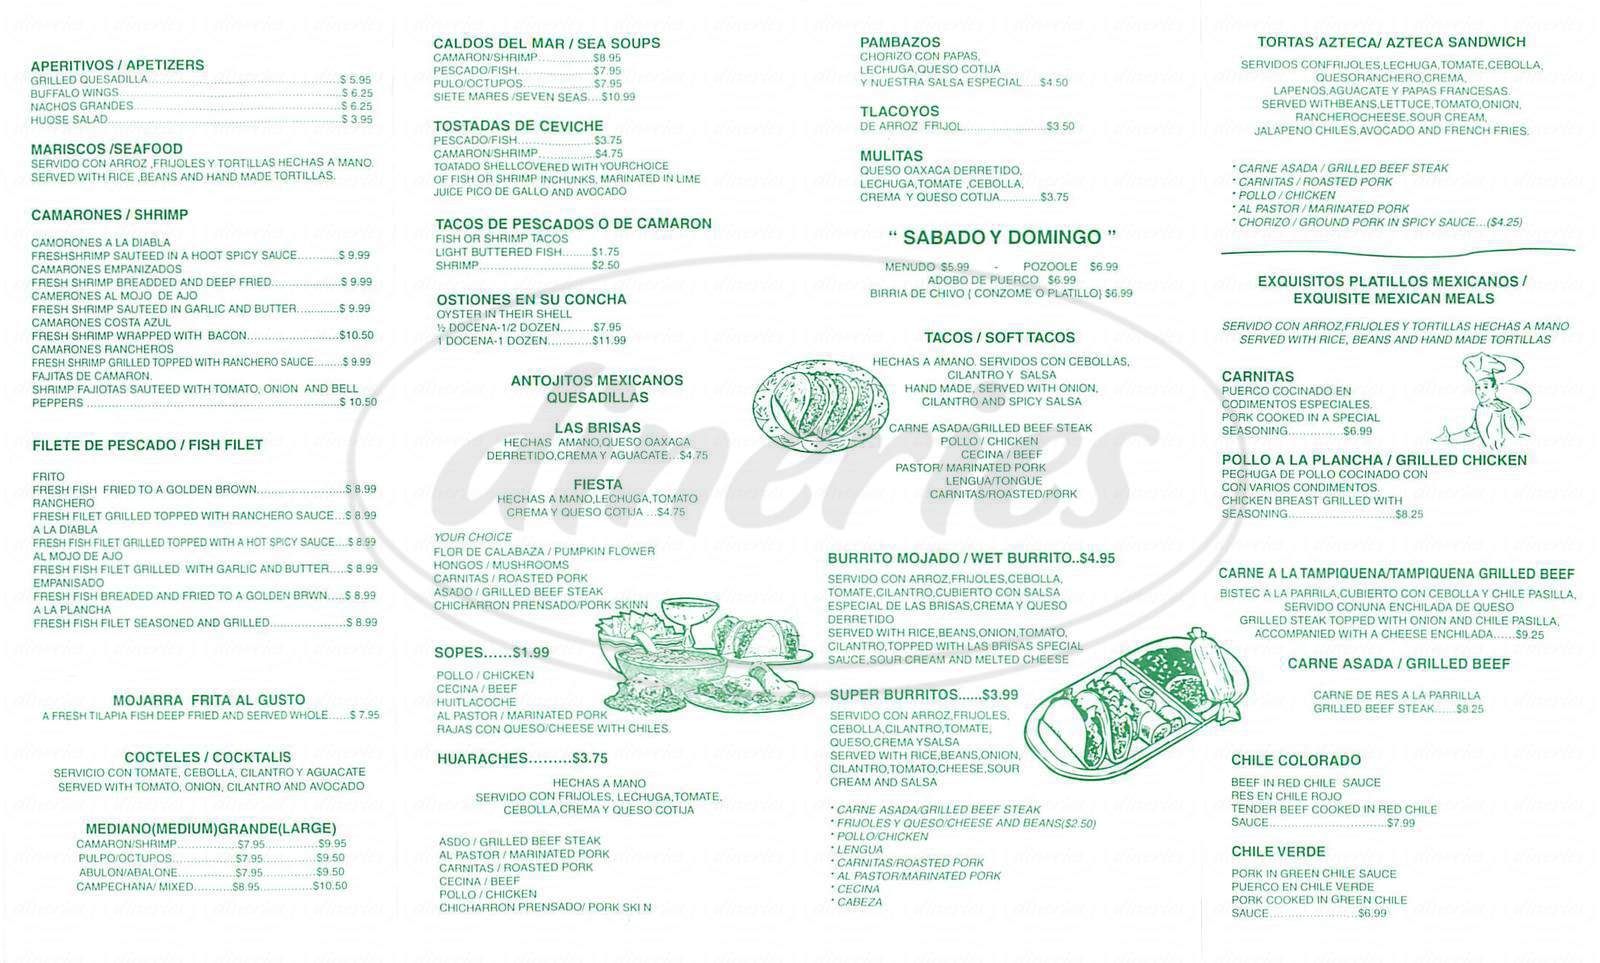 menu for Las Brisas